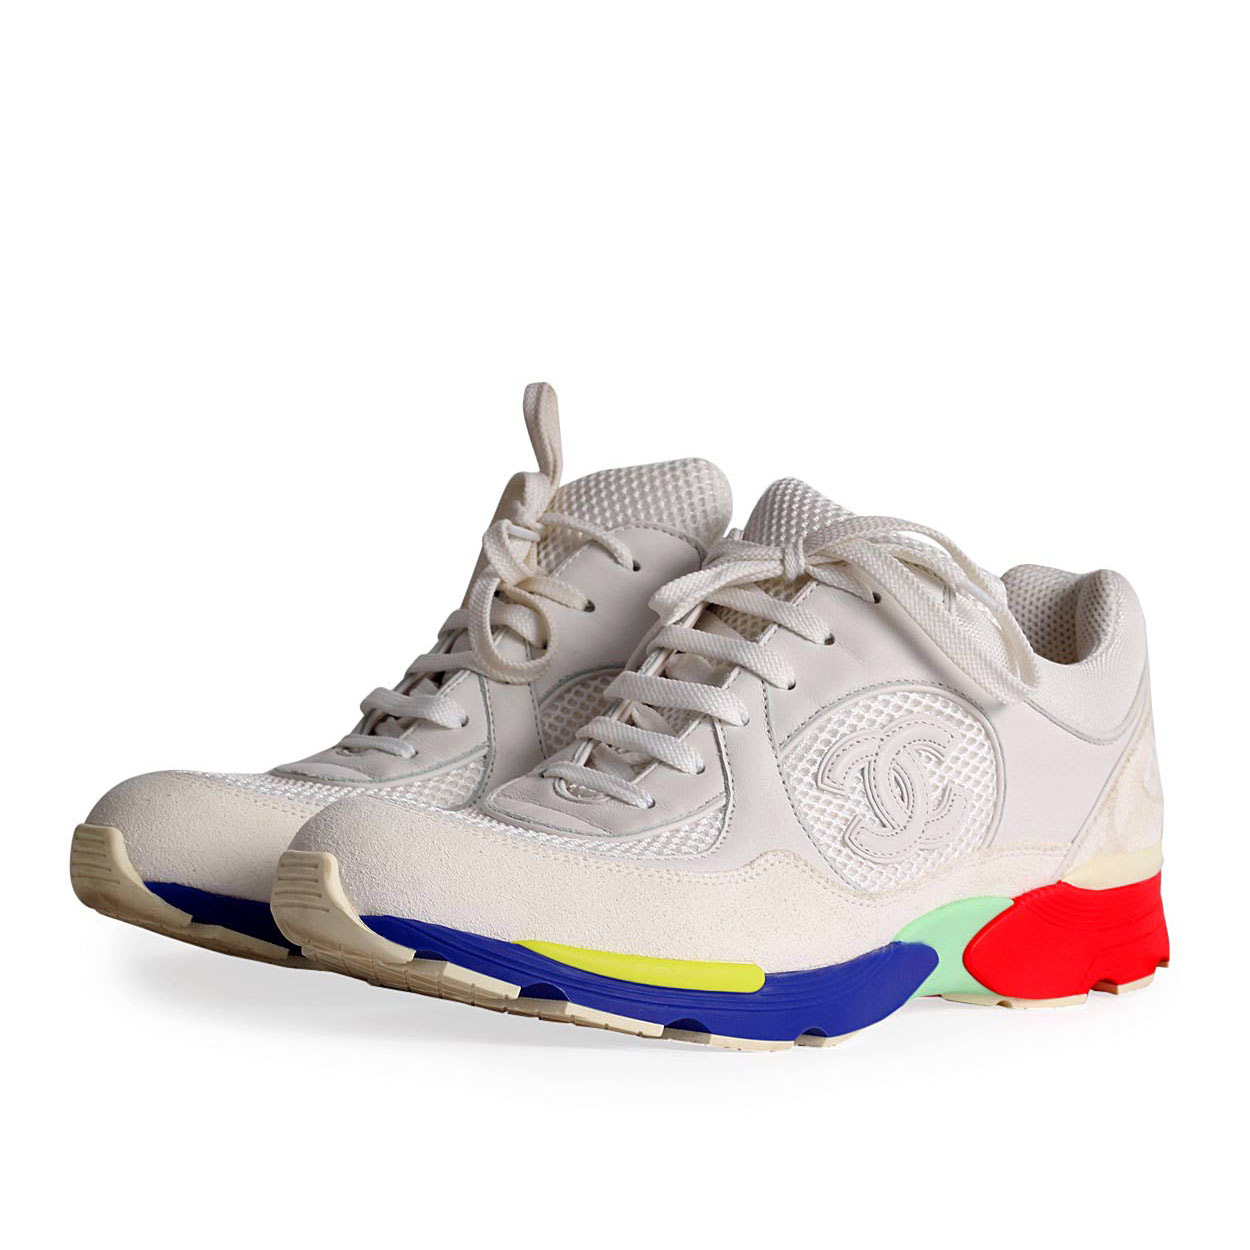 CHANEL Fabric Sneakers with Multicolor